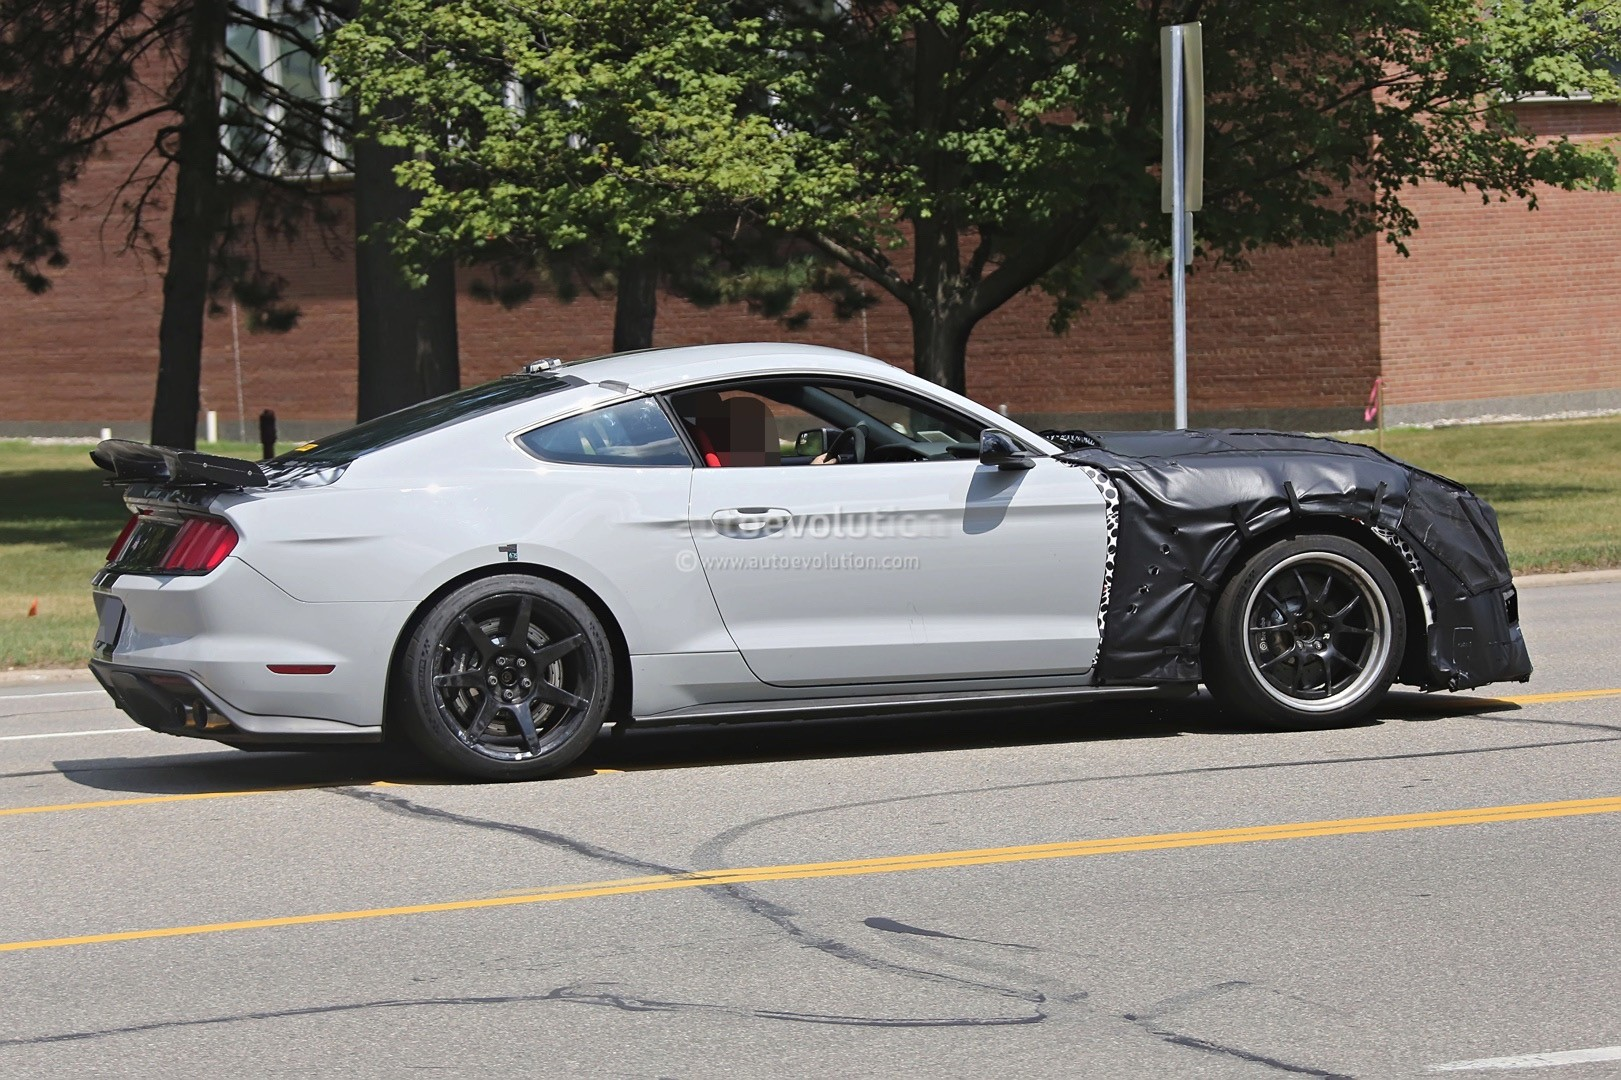 2019 Shelby Gt500 Mustang Spied Benchmarking Against 2017